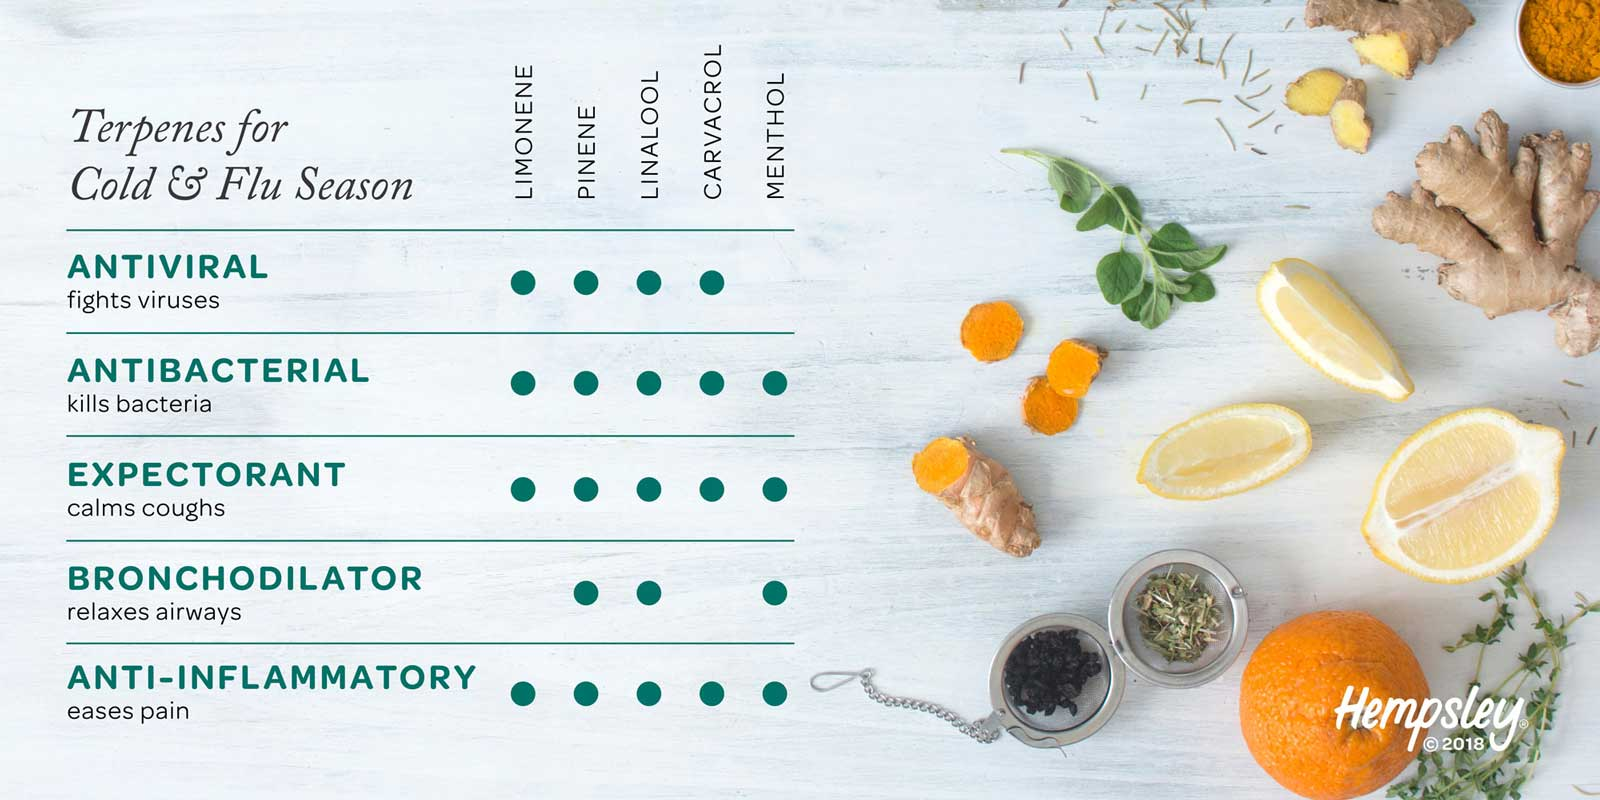 Infographic reference chart for antiviral terpenes for cold and flu season